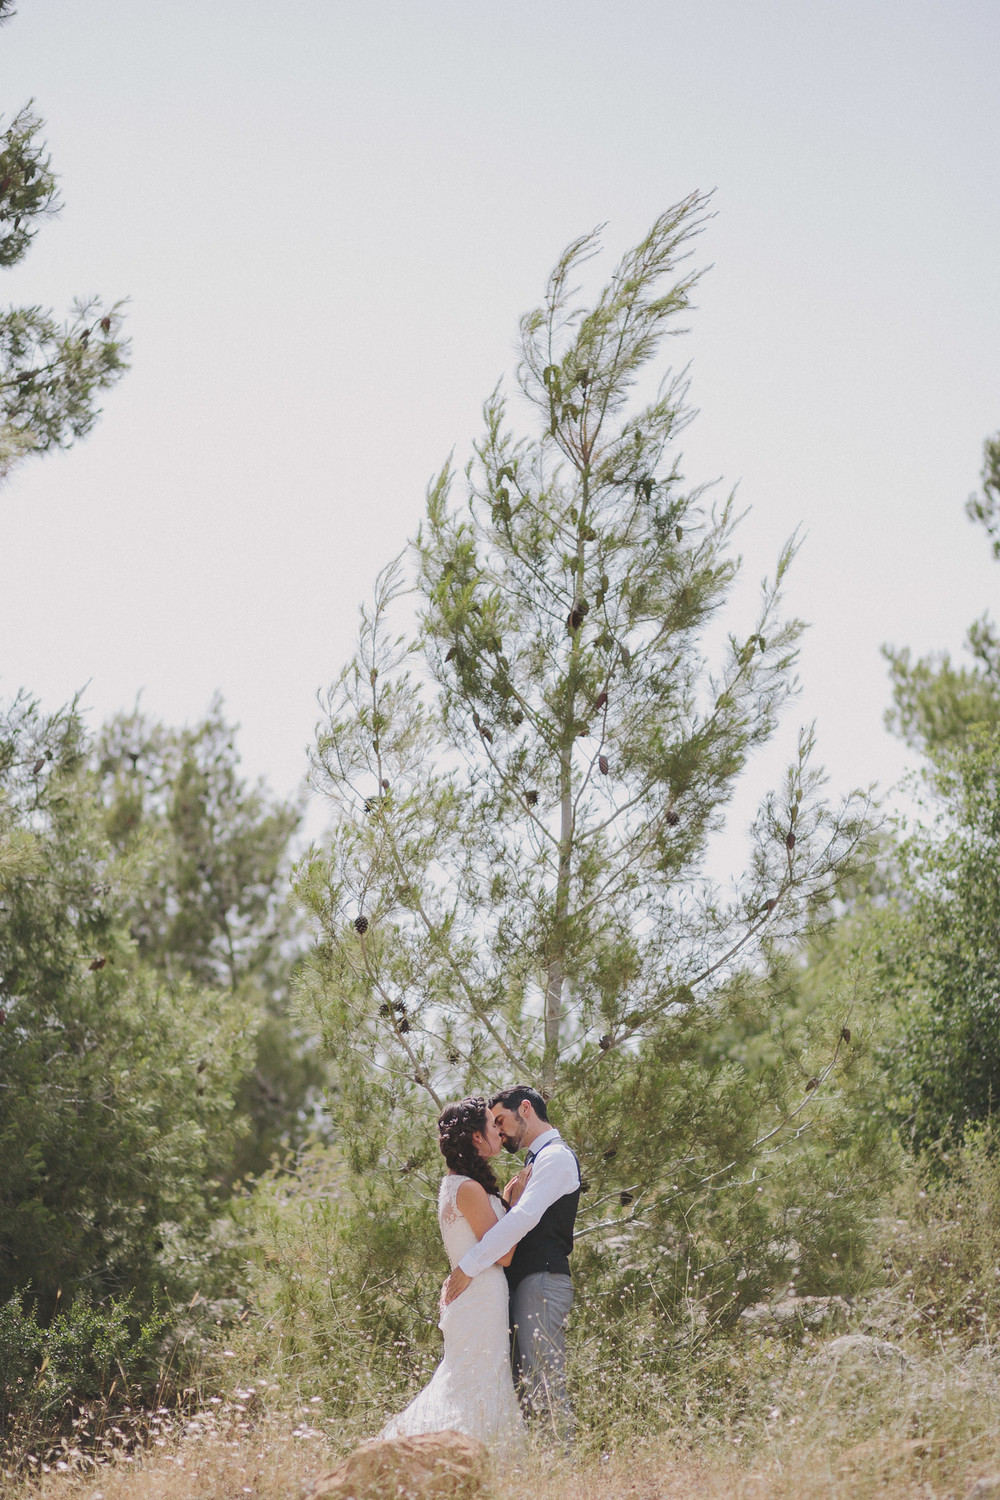 Countryside Wedding - Liron Erel - Echoes & Wildhearts 0026.jpg